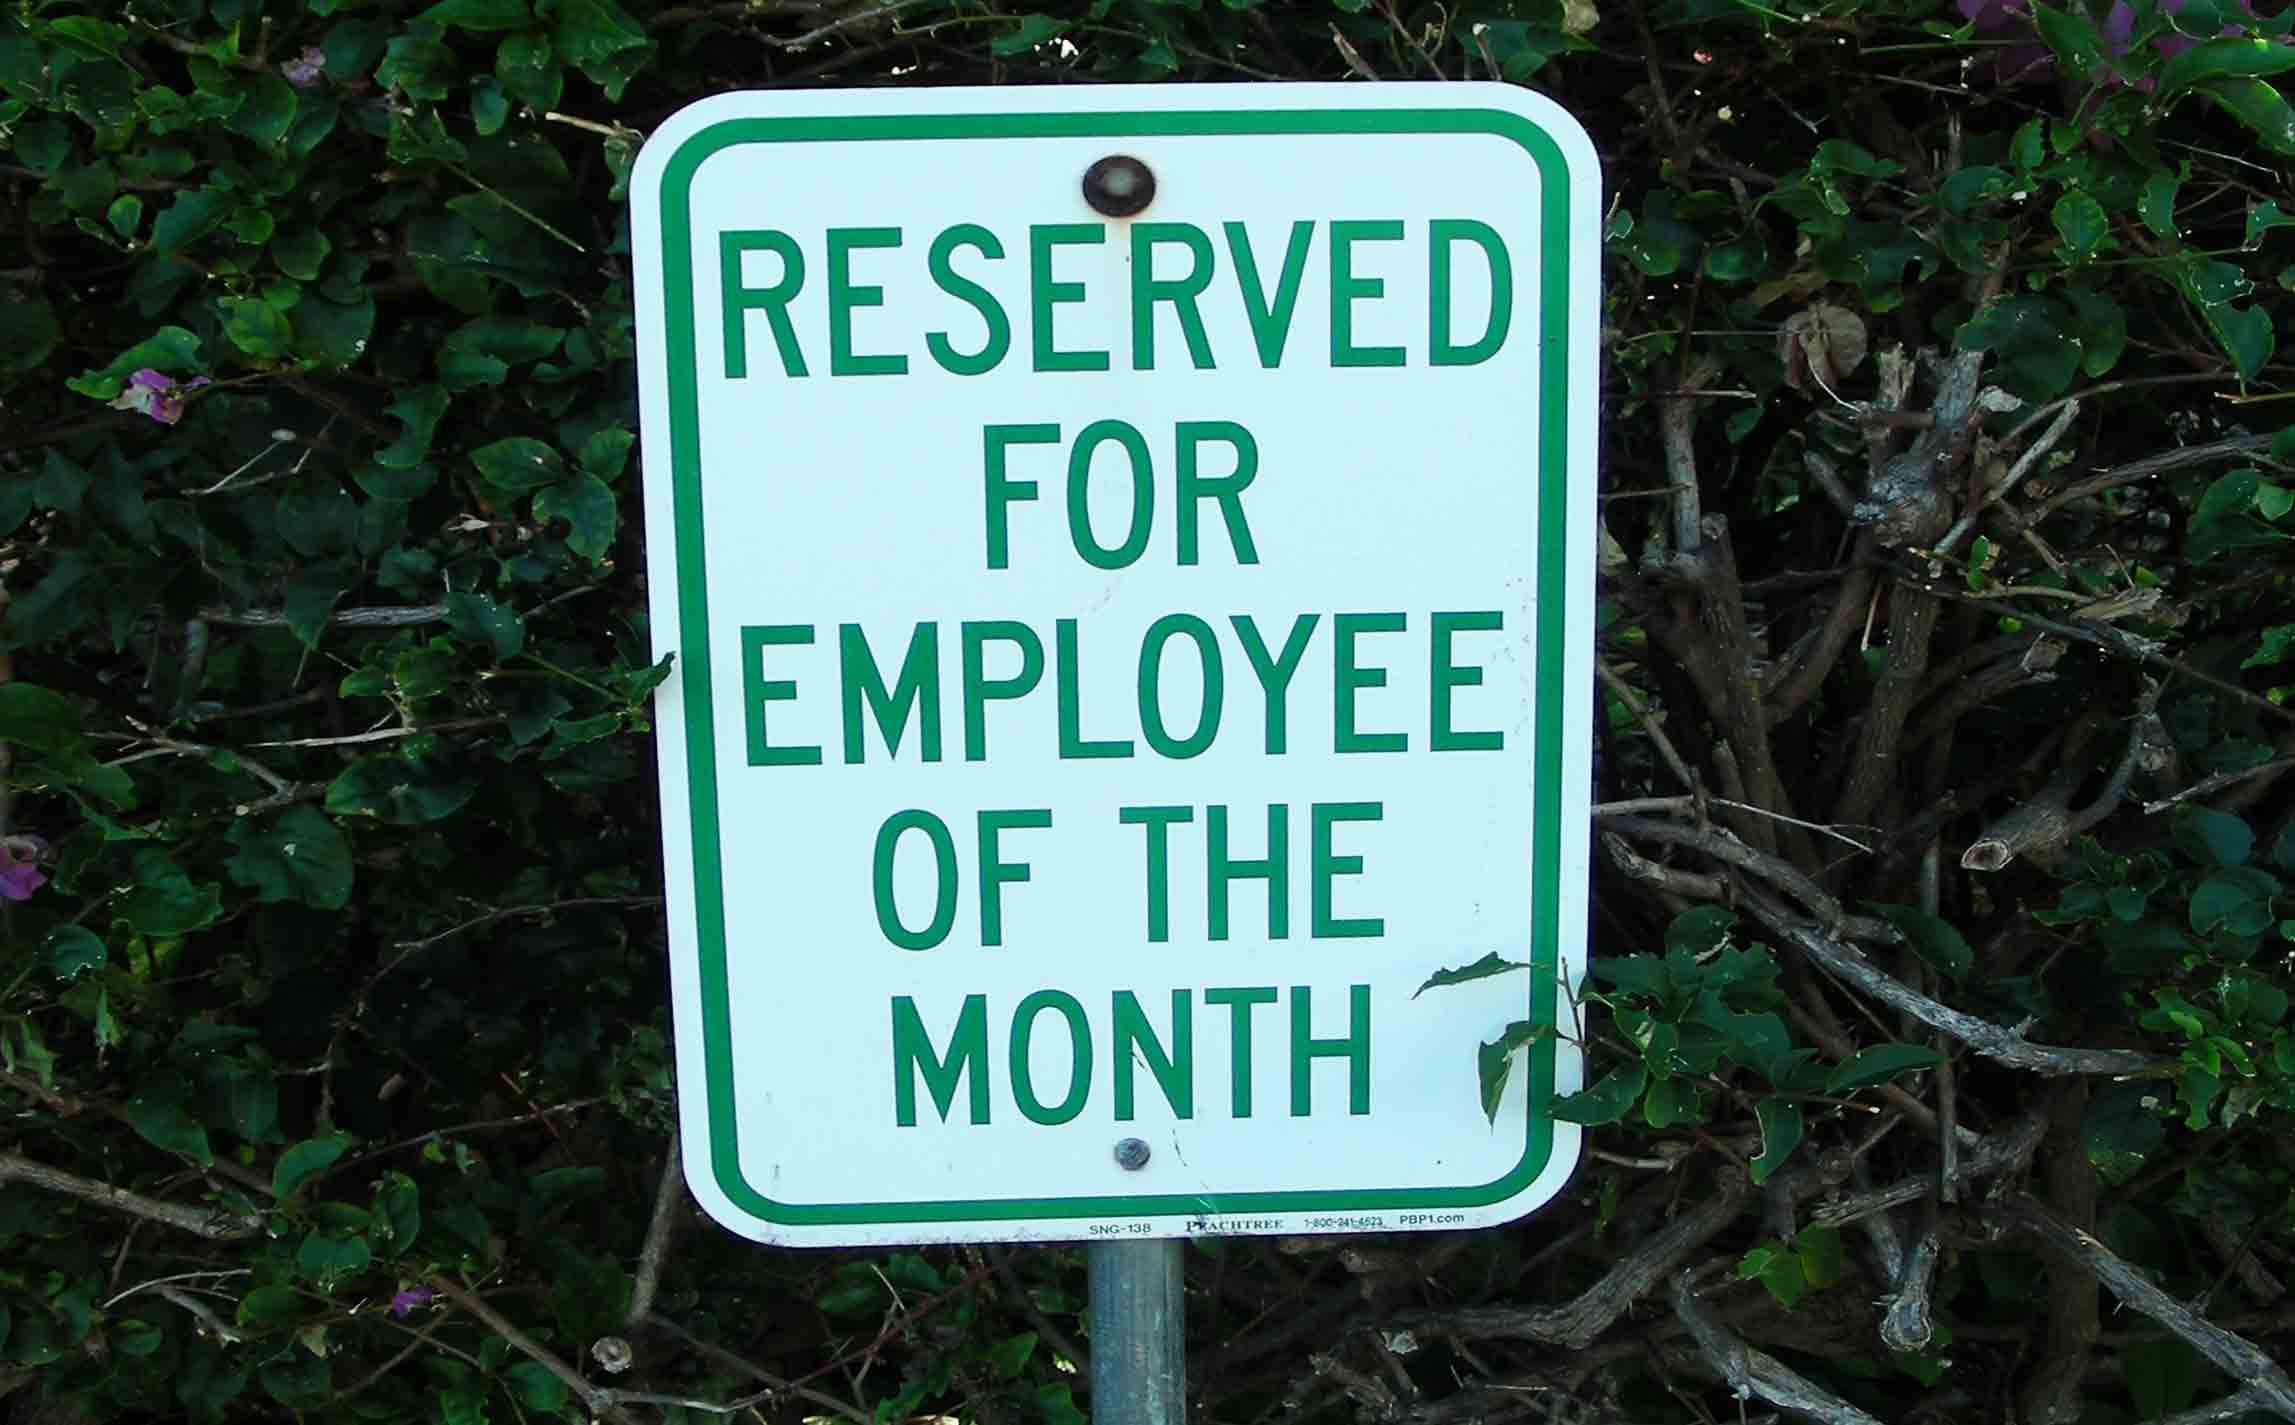 parking spot reserved for employee of the month